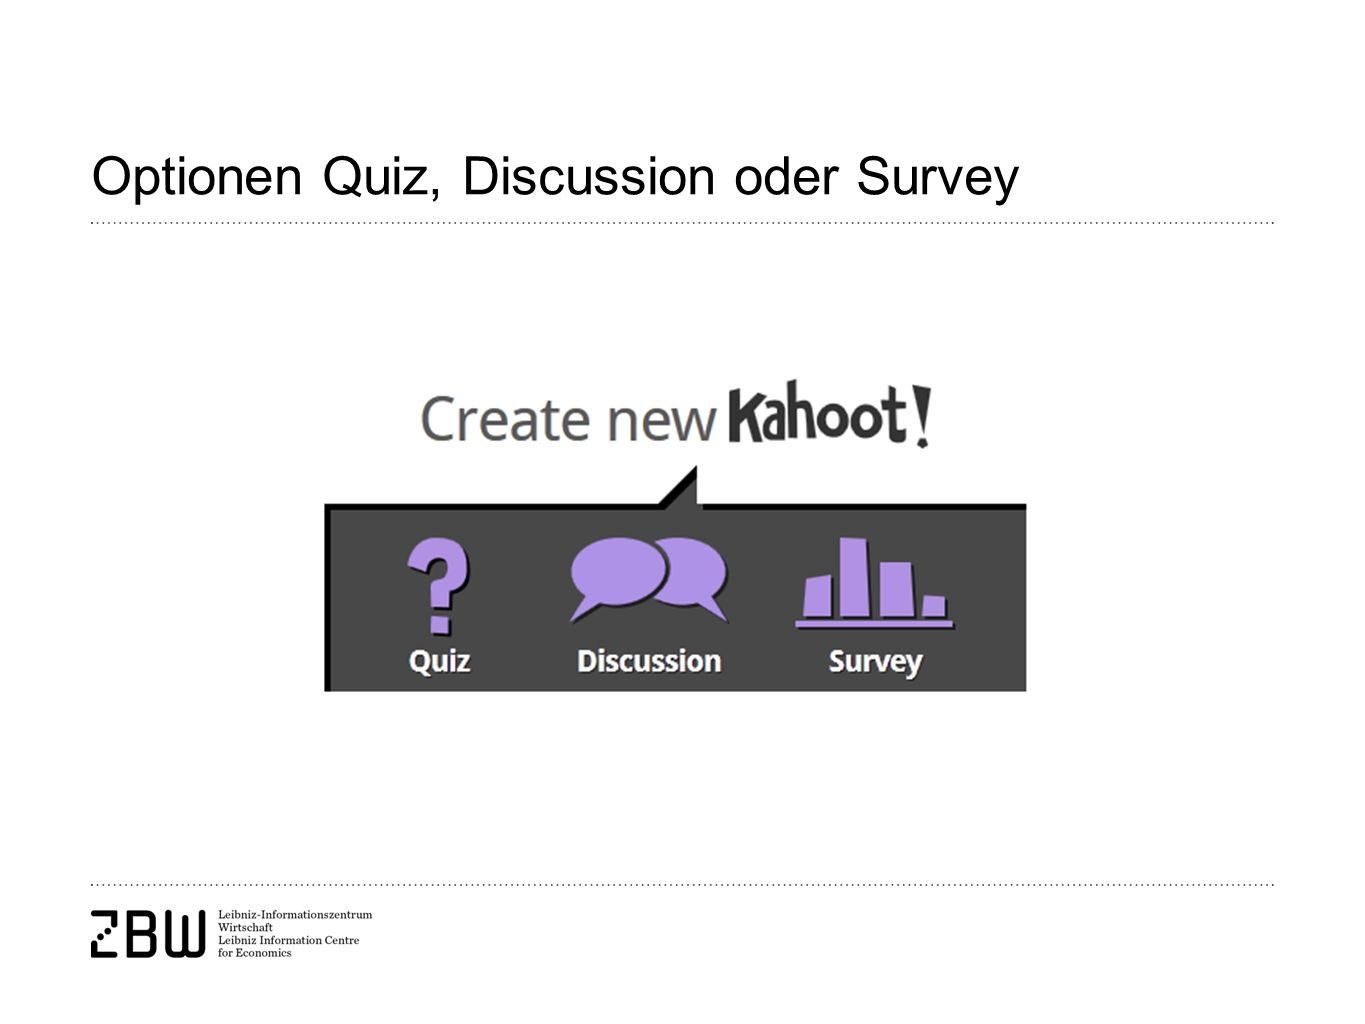 Optionen Quiz, Discussion oder Survey